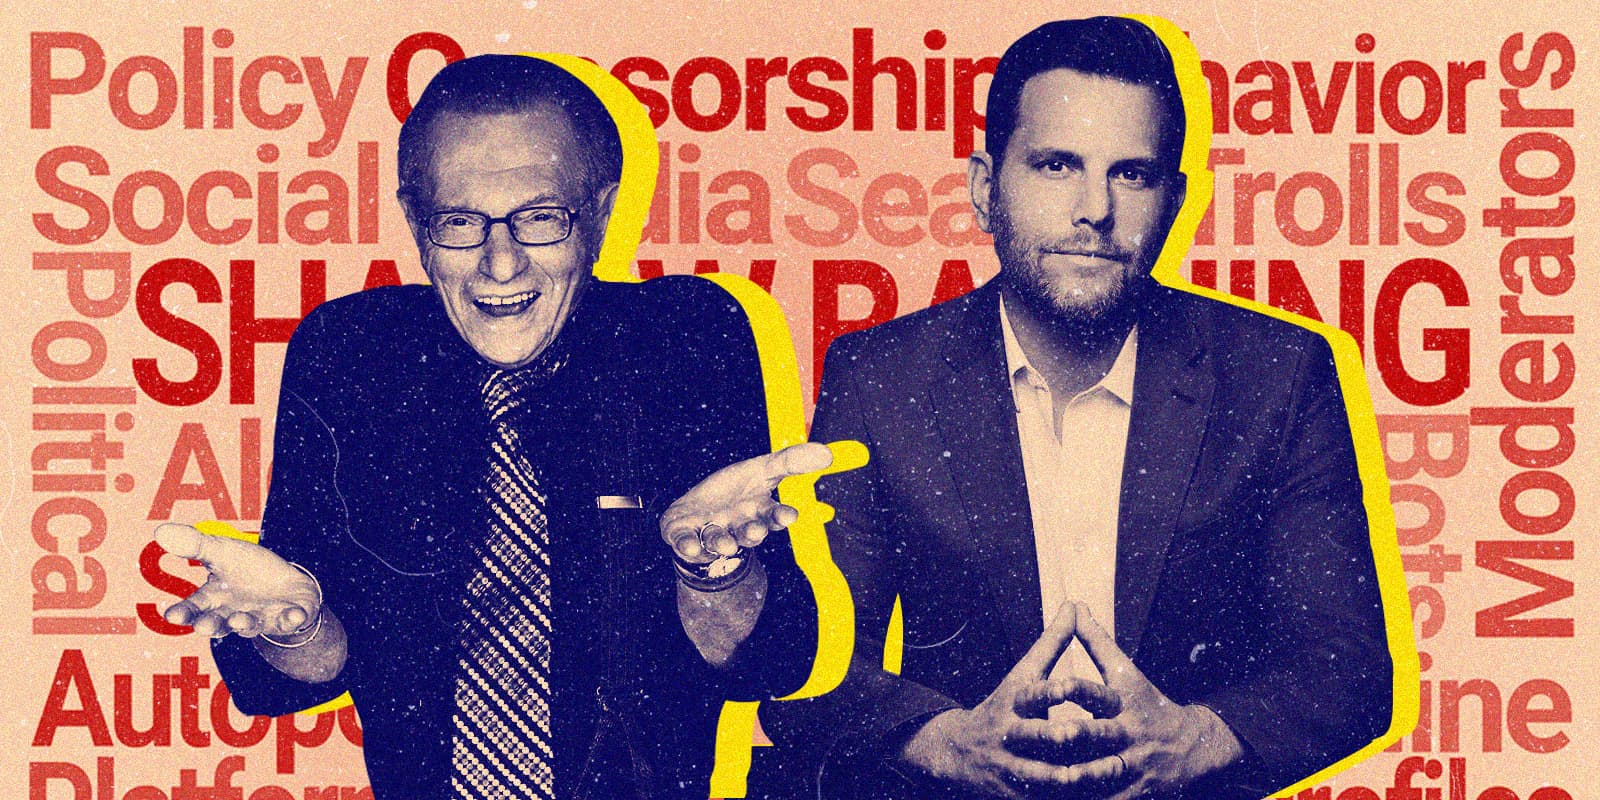 Dave Rubin is the Larry King of the culture wars